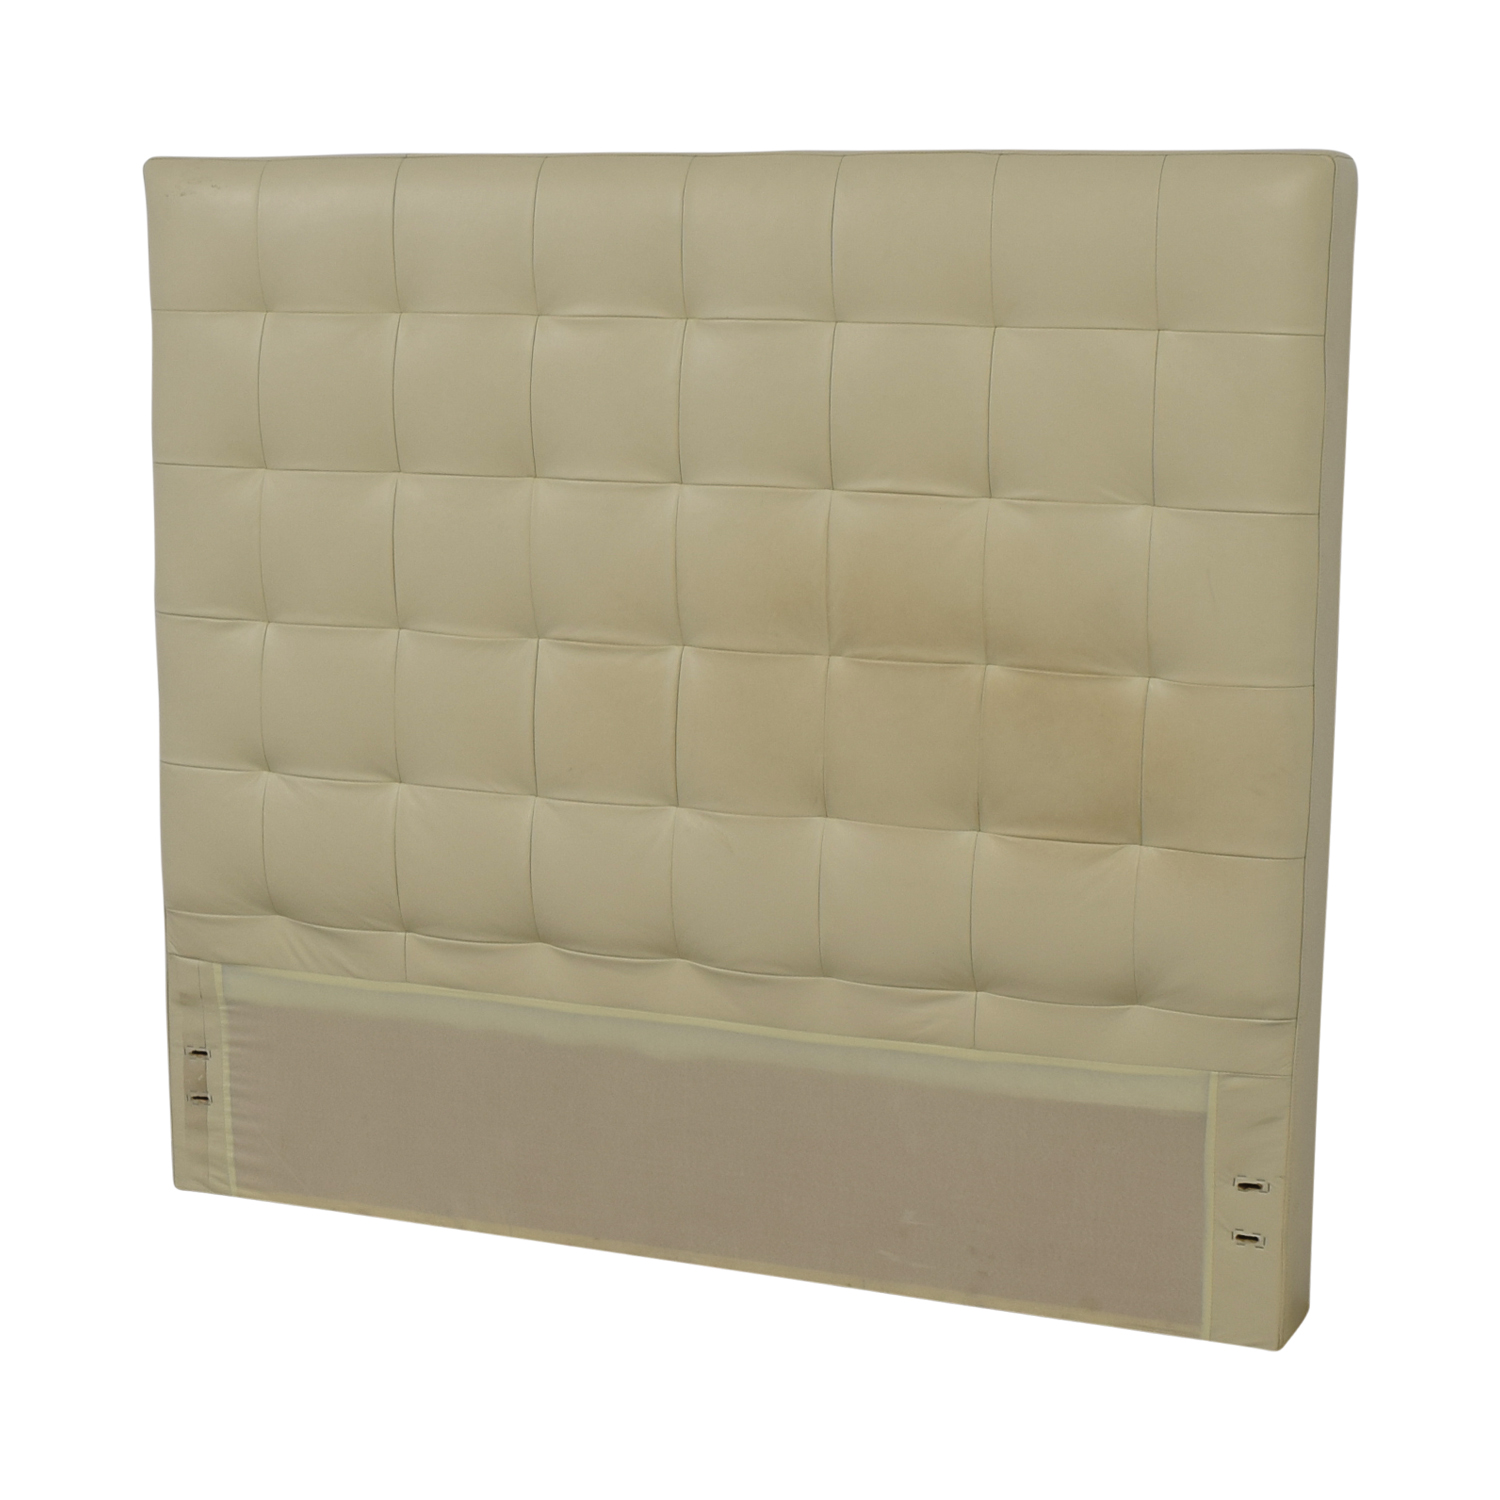 West Elm West Elm White Leather Tufted Queen Headboard used